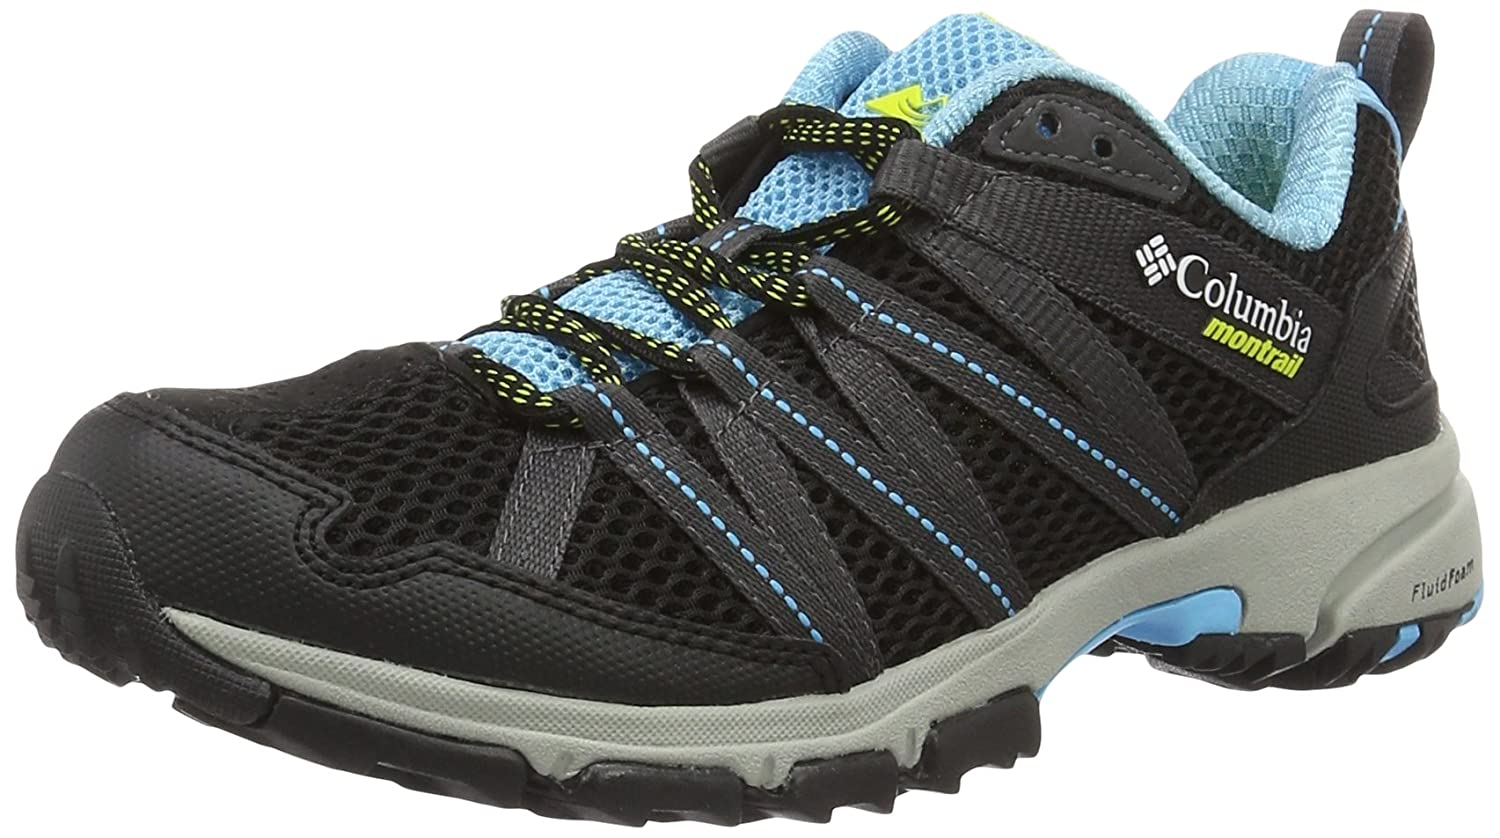 Columbia Montrail Women's Mountain Masochist III Running Shoe B01HCKW2D8 6 B(M) US|Bounty Blue, Black